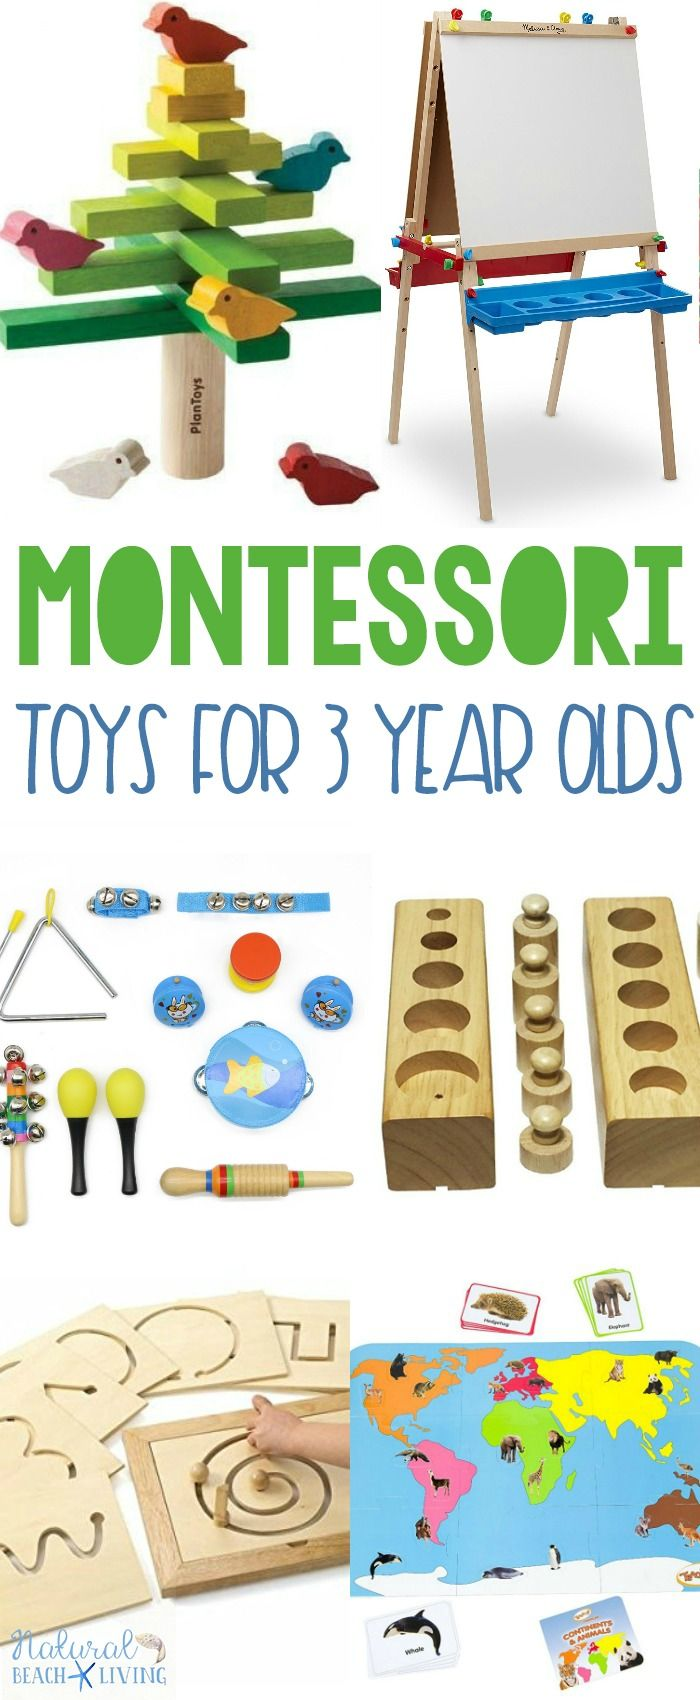 montessori gifts 3 year olds love | natural beach living